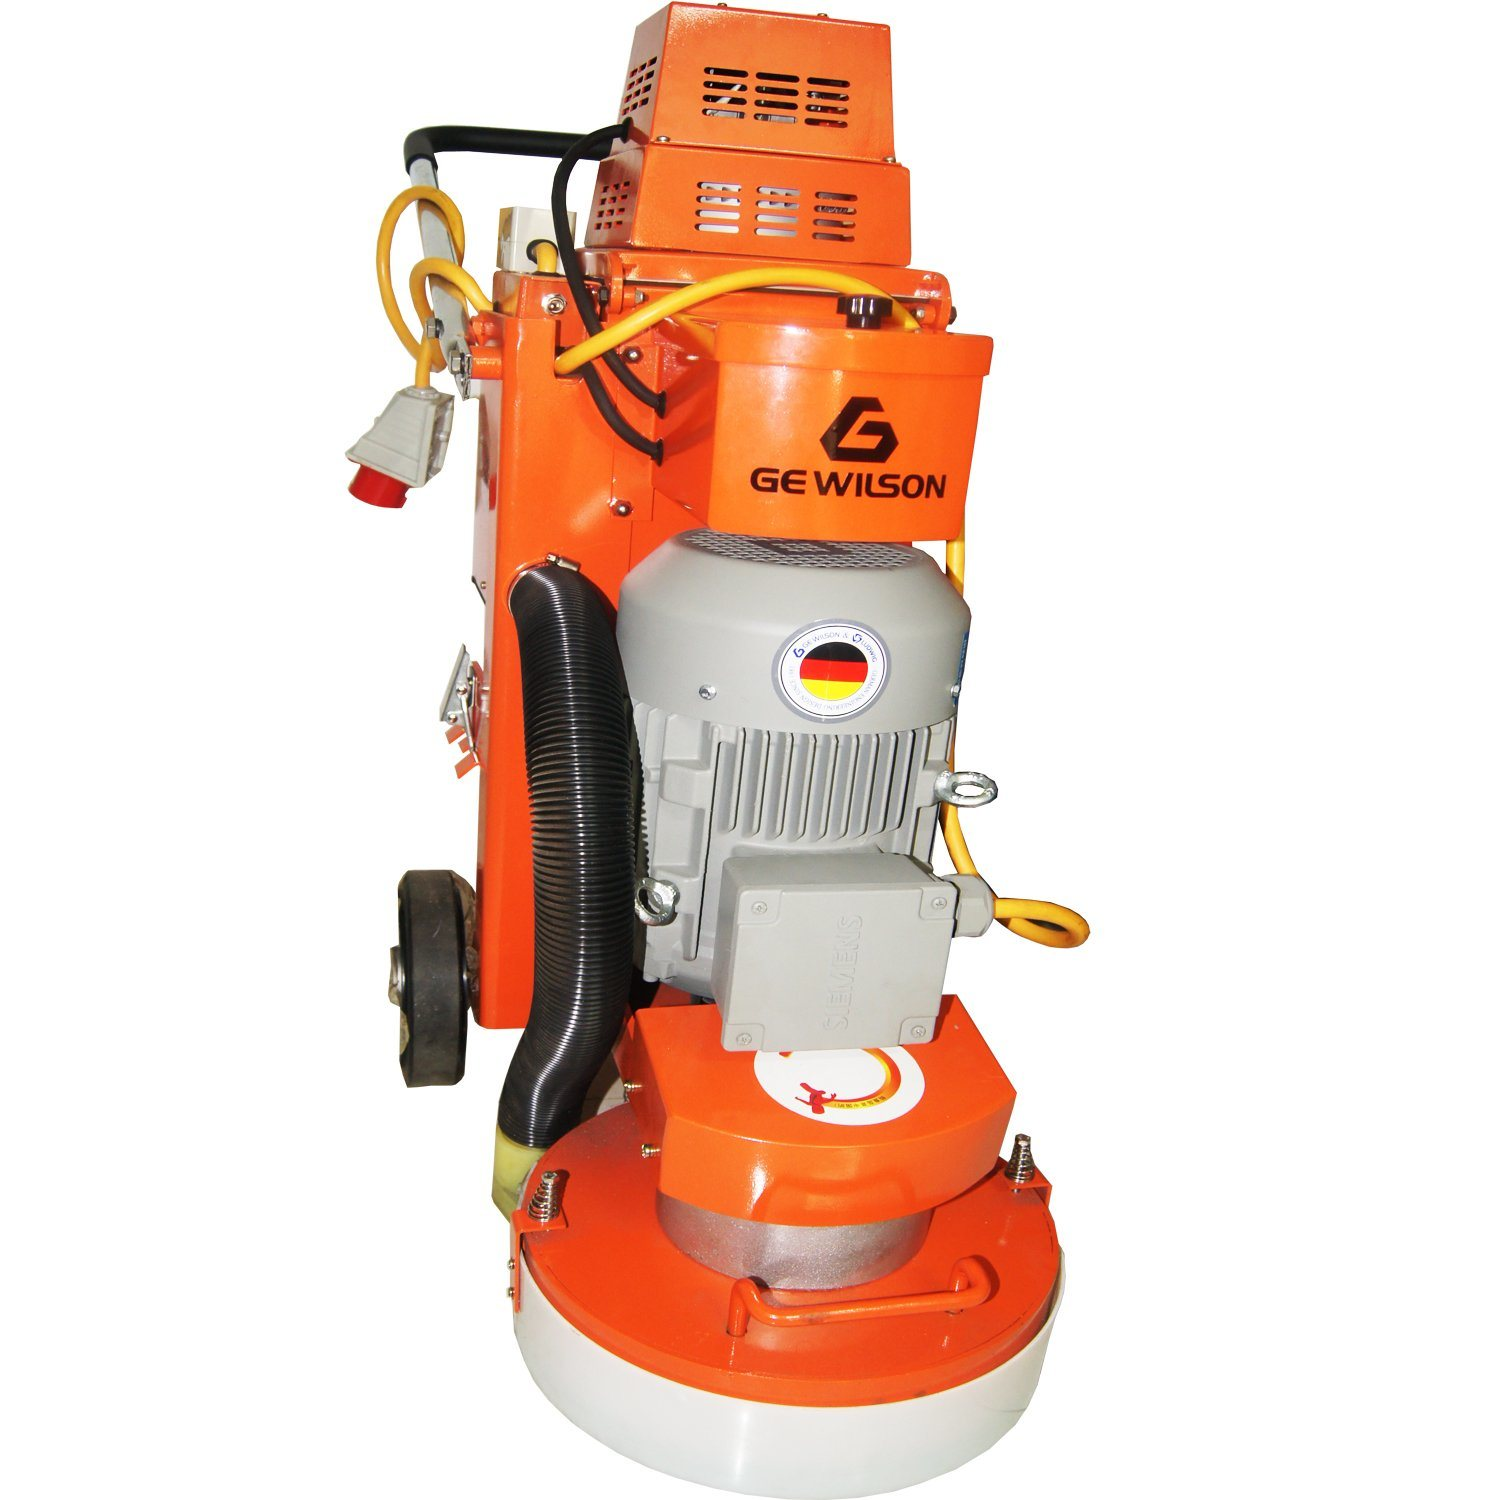 Walk Behind Electric Concrete Epoxy Floor Grinders and Polishers